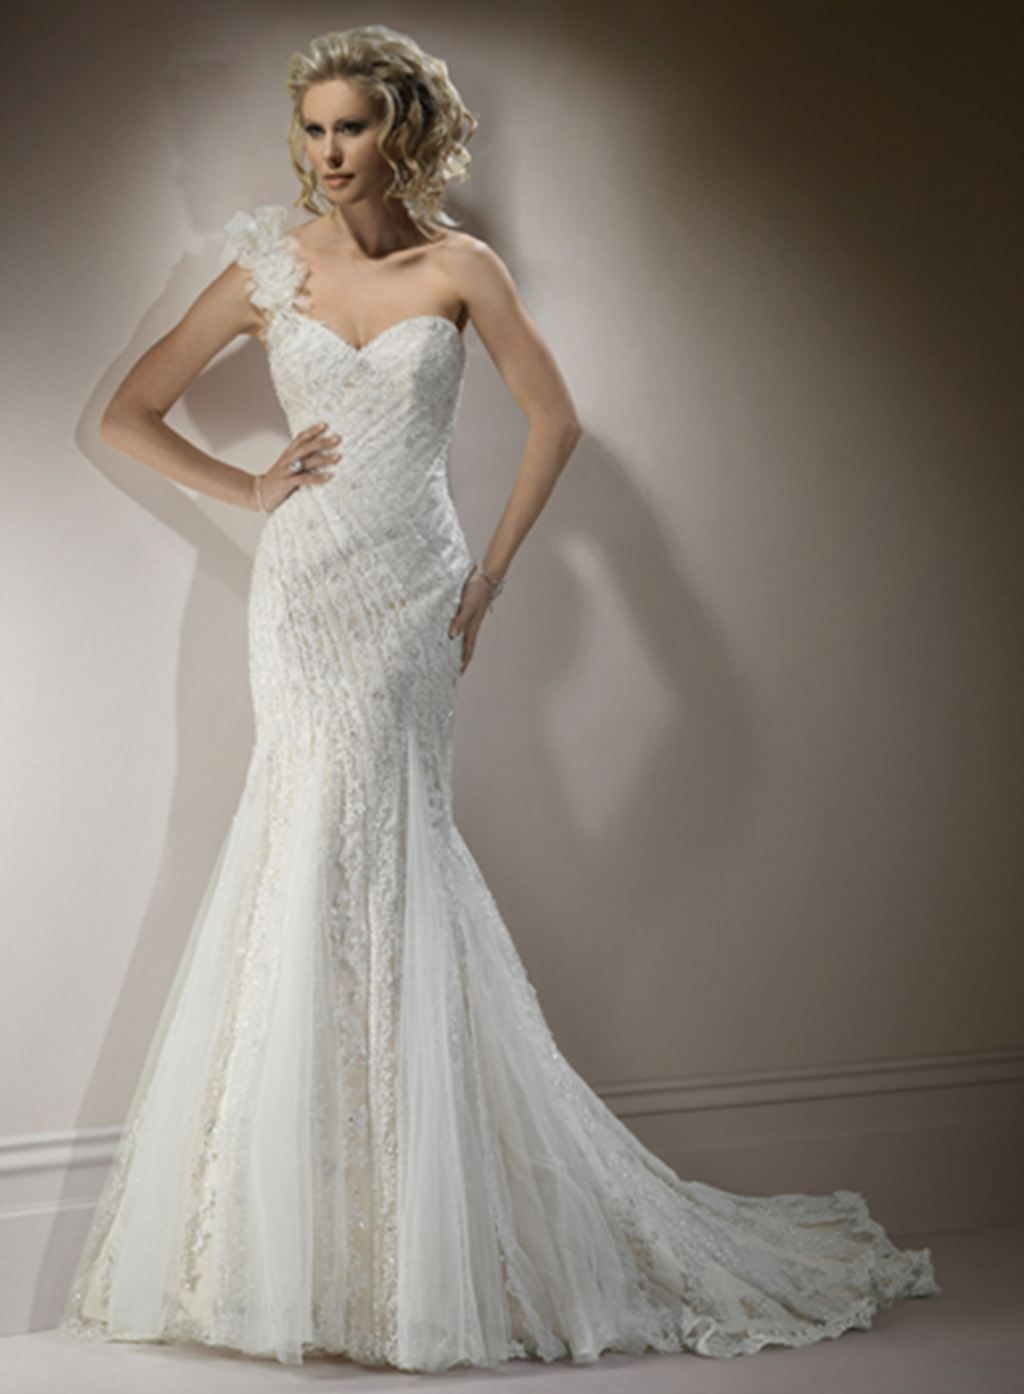 Wedding dress patterns with sleeves  Maggie Sottero Genevieve Fit and flare gown with sweetheart